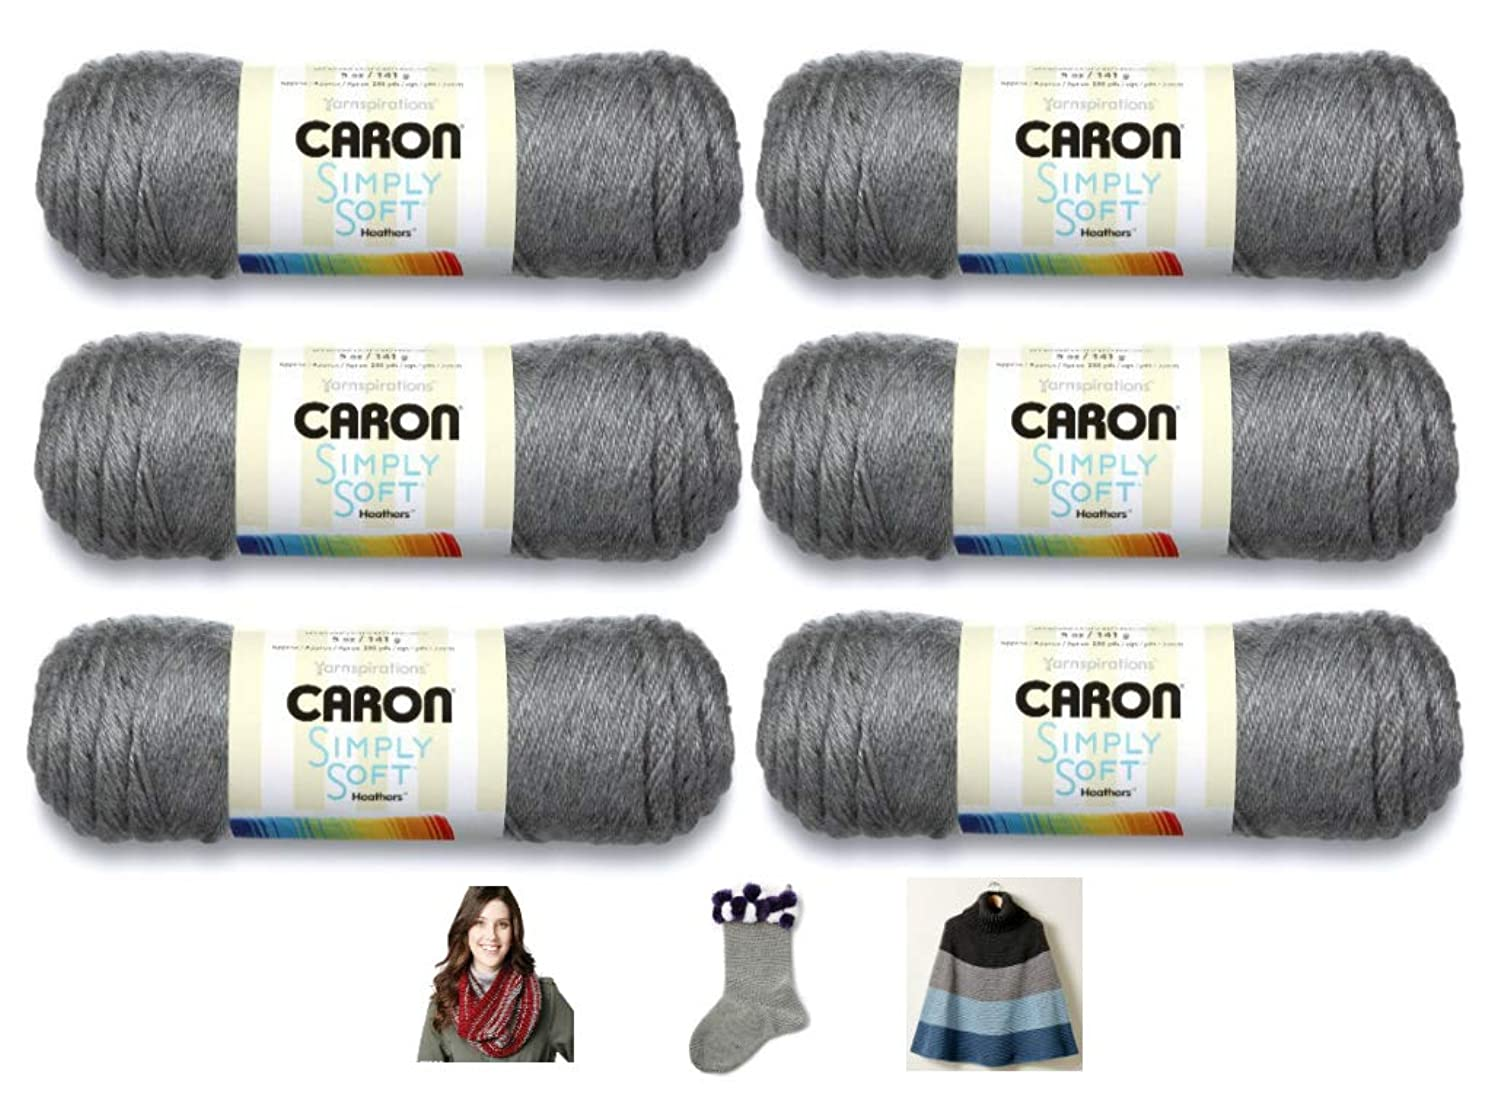 Caron Simply Soft Heathers Yarn - 6 Pack Bundle (with 3 Patterns) - Gray Heather